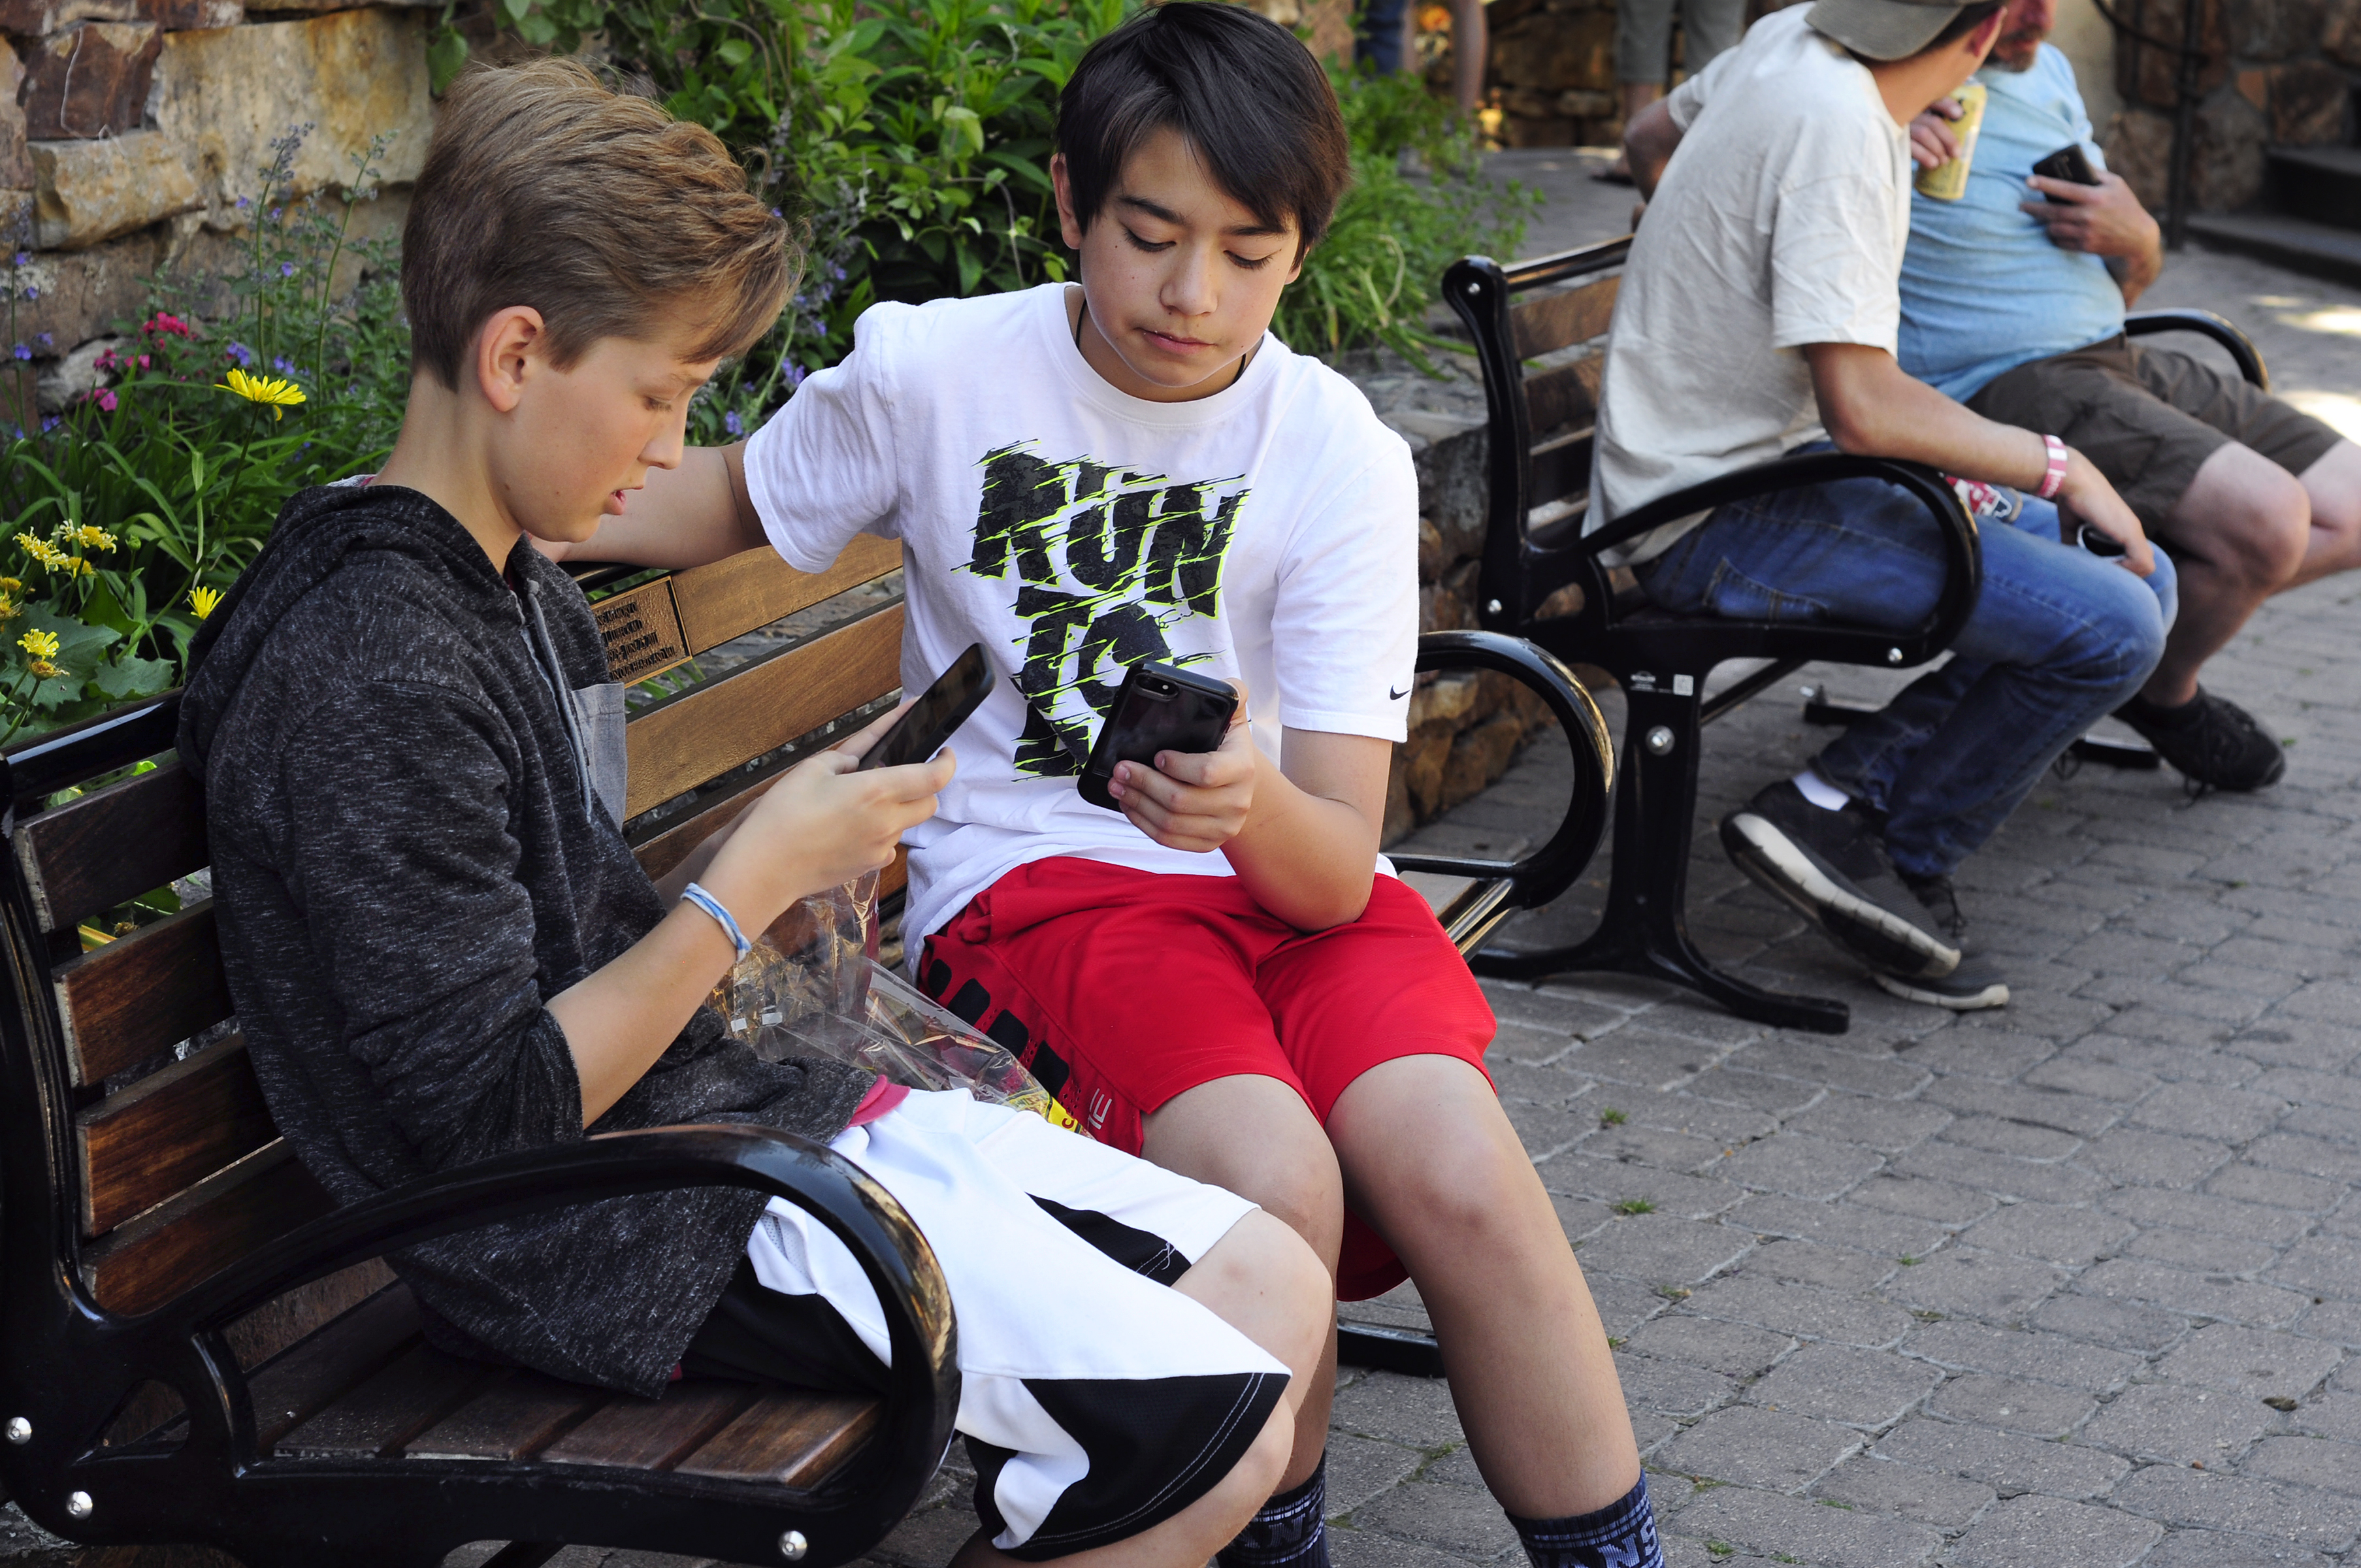 Two teenage boys use their smartphones as they sit on a bench in Vail, Colorado.